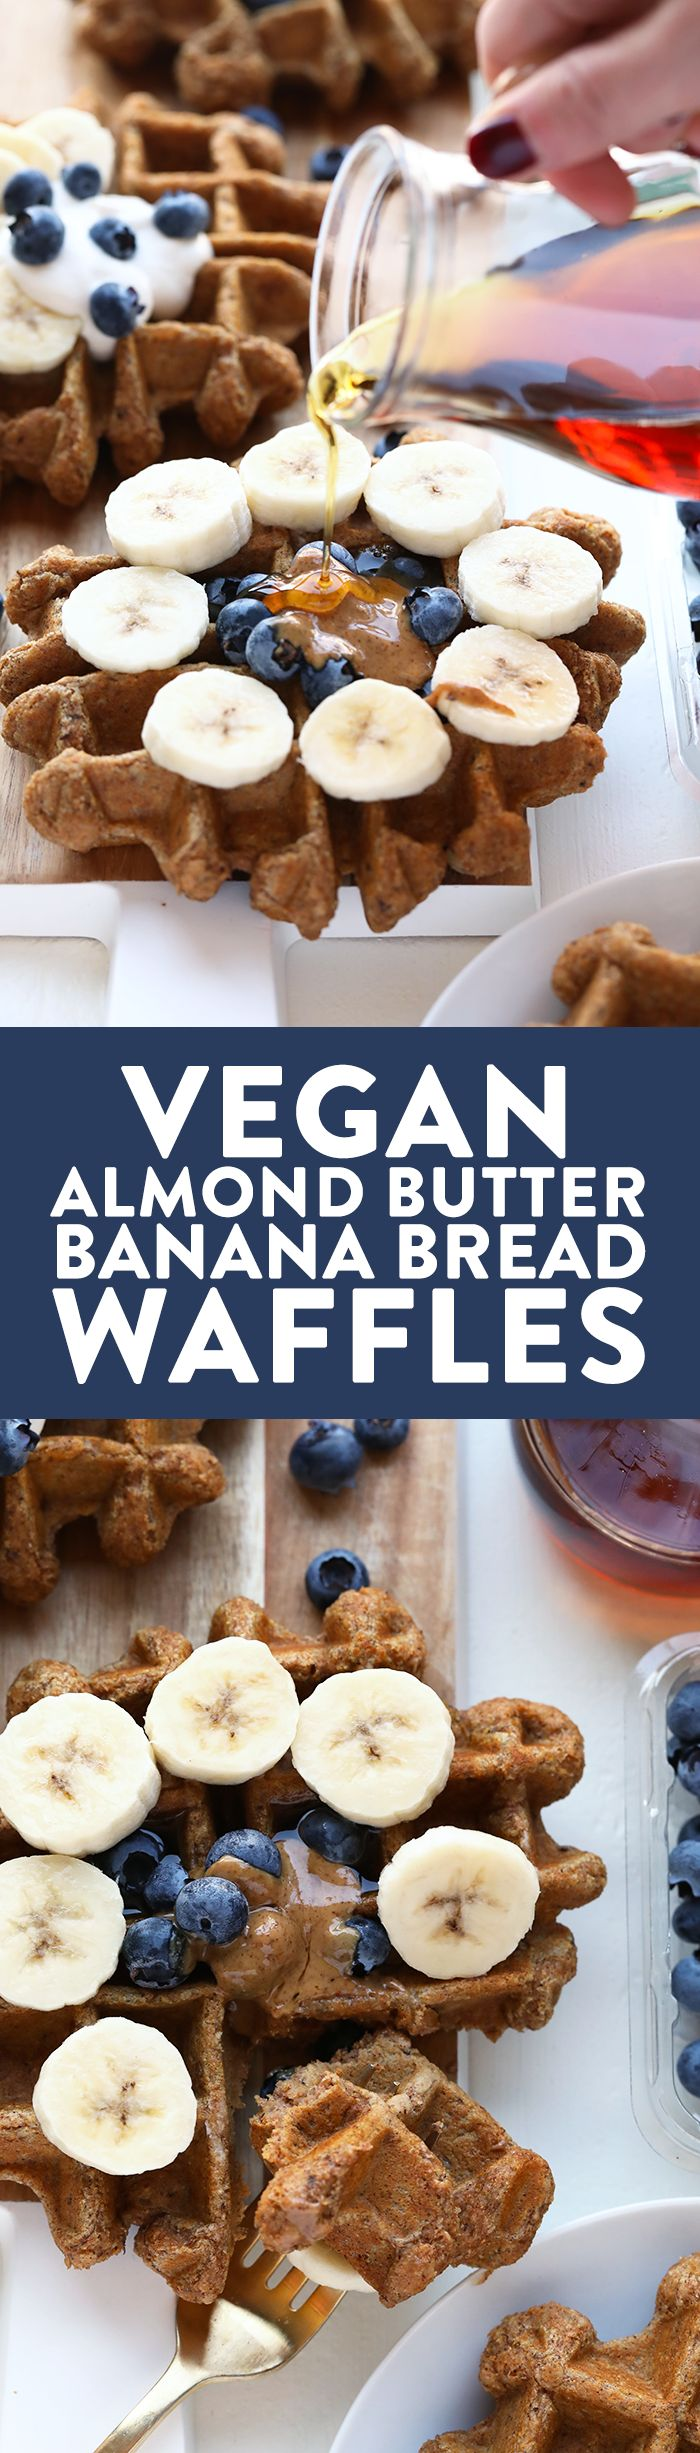 Vegan Almond Butter Banana Bread Waffles (Whole Wheat!) - Fit Foodie Finds